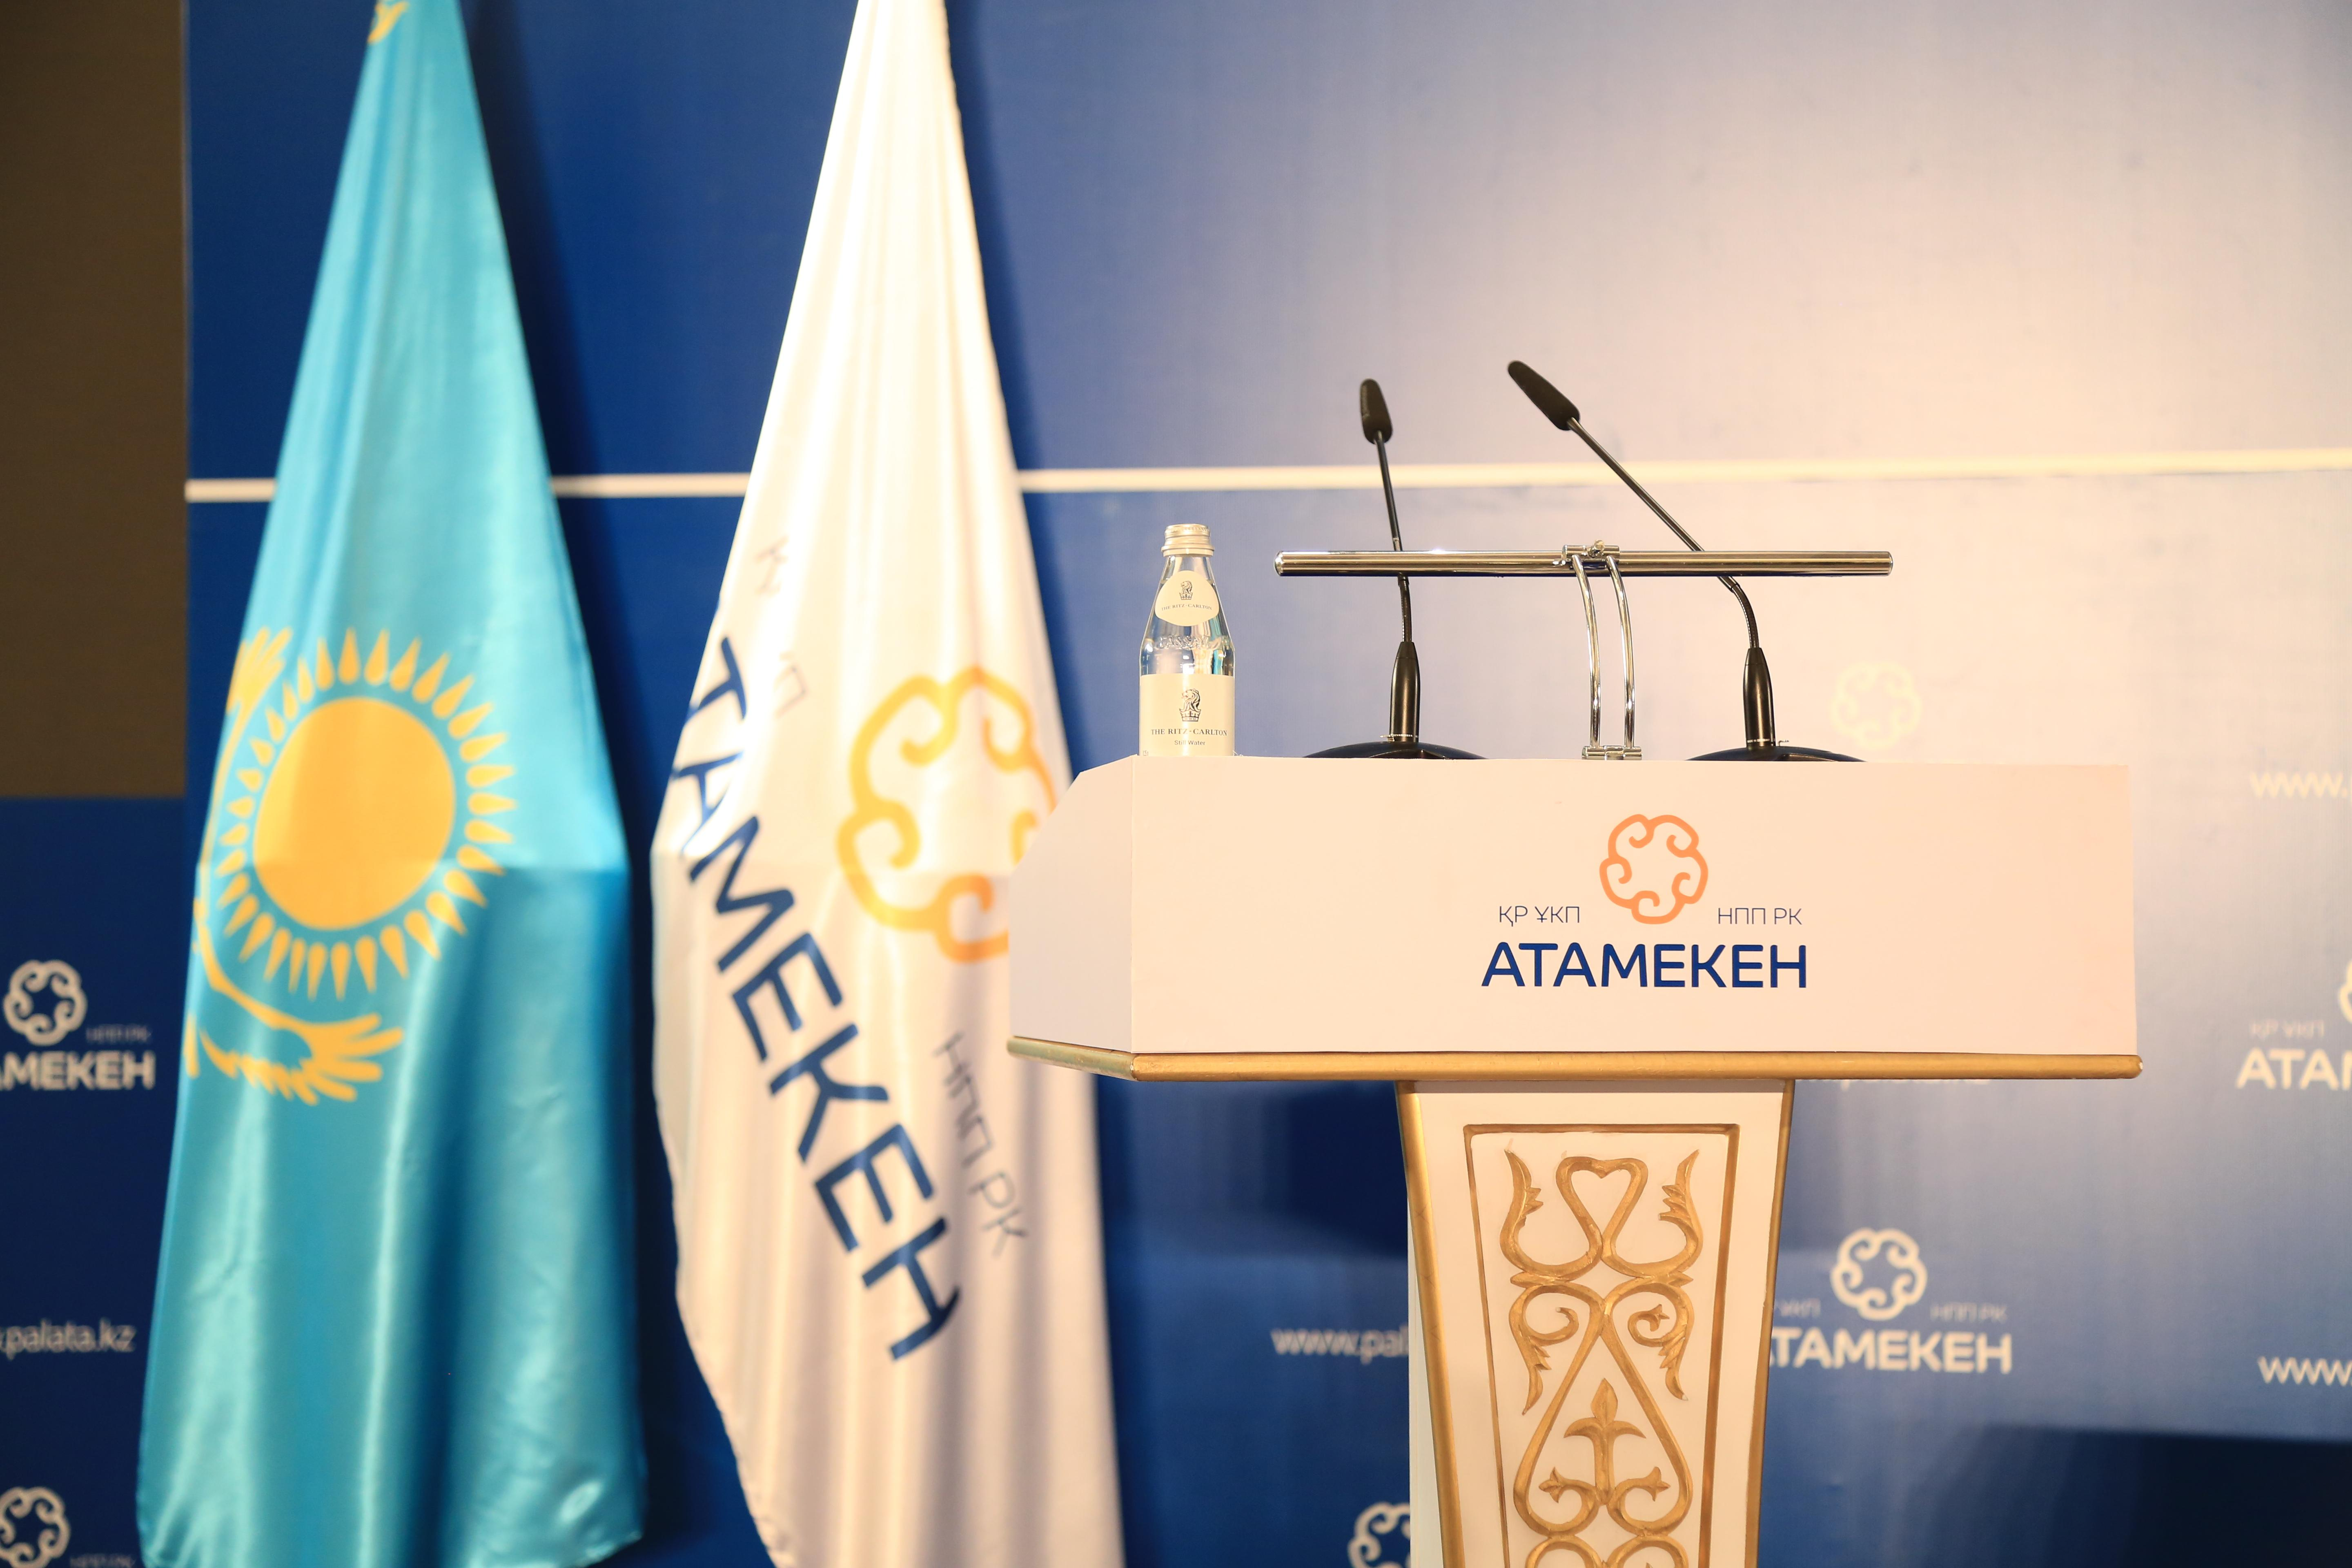 At NCE Atameken they consider it premature to introduce the utilization fee on agricultural machinery in Kazakhstan